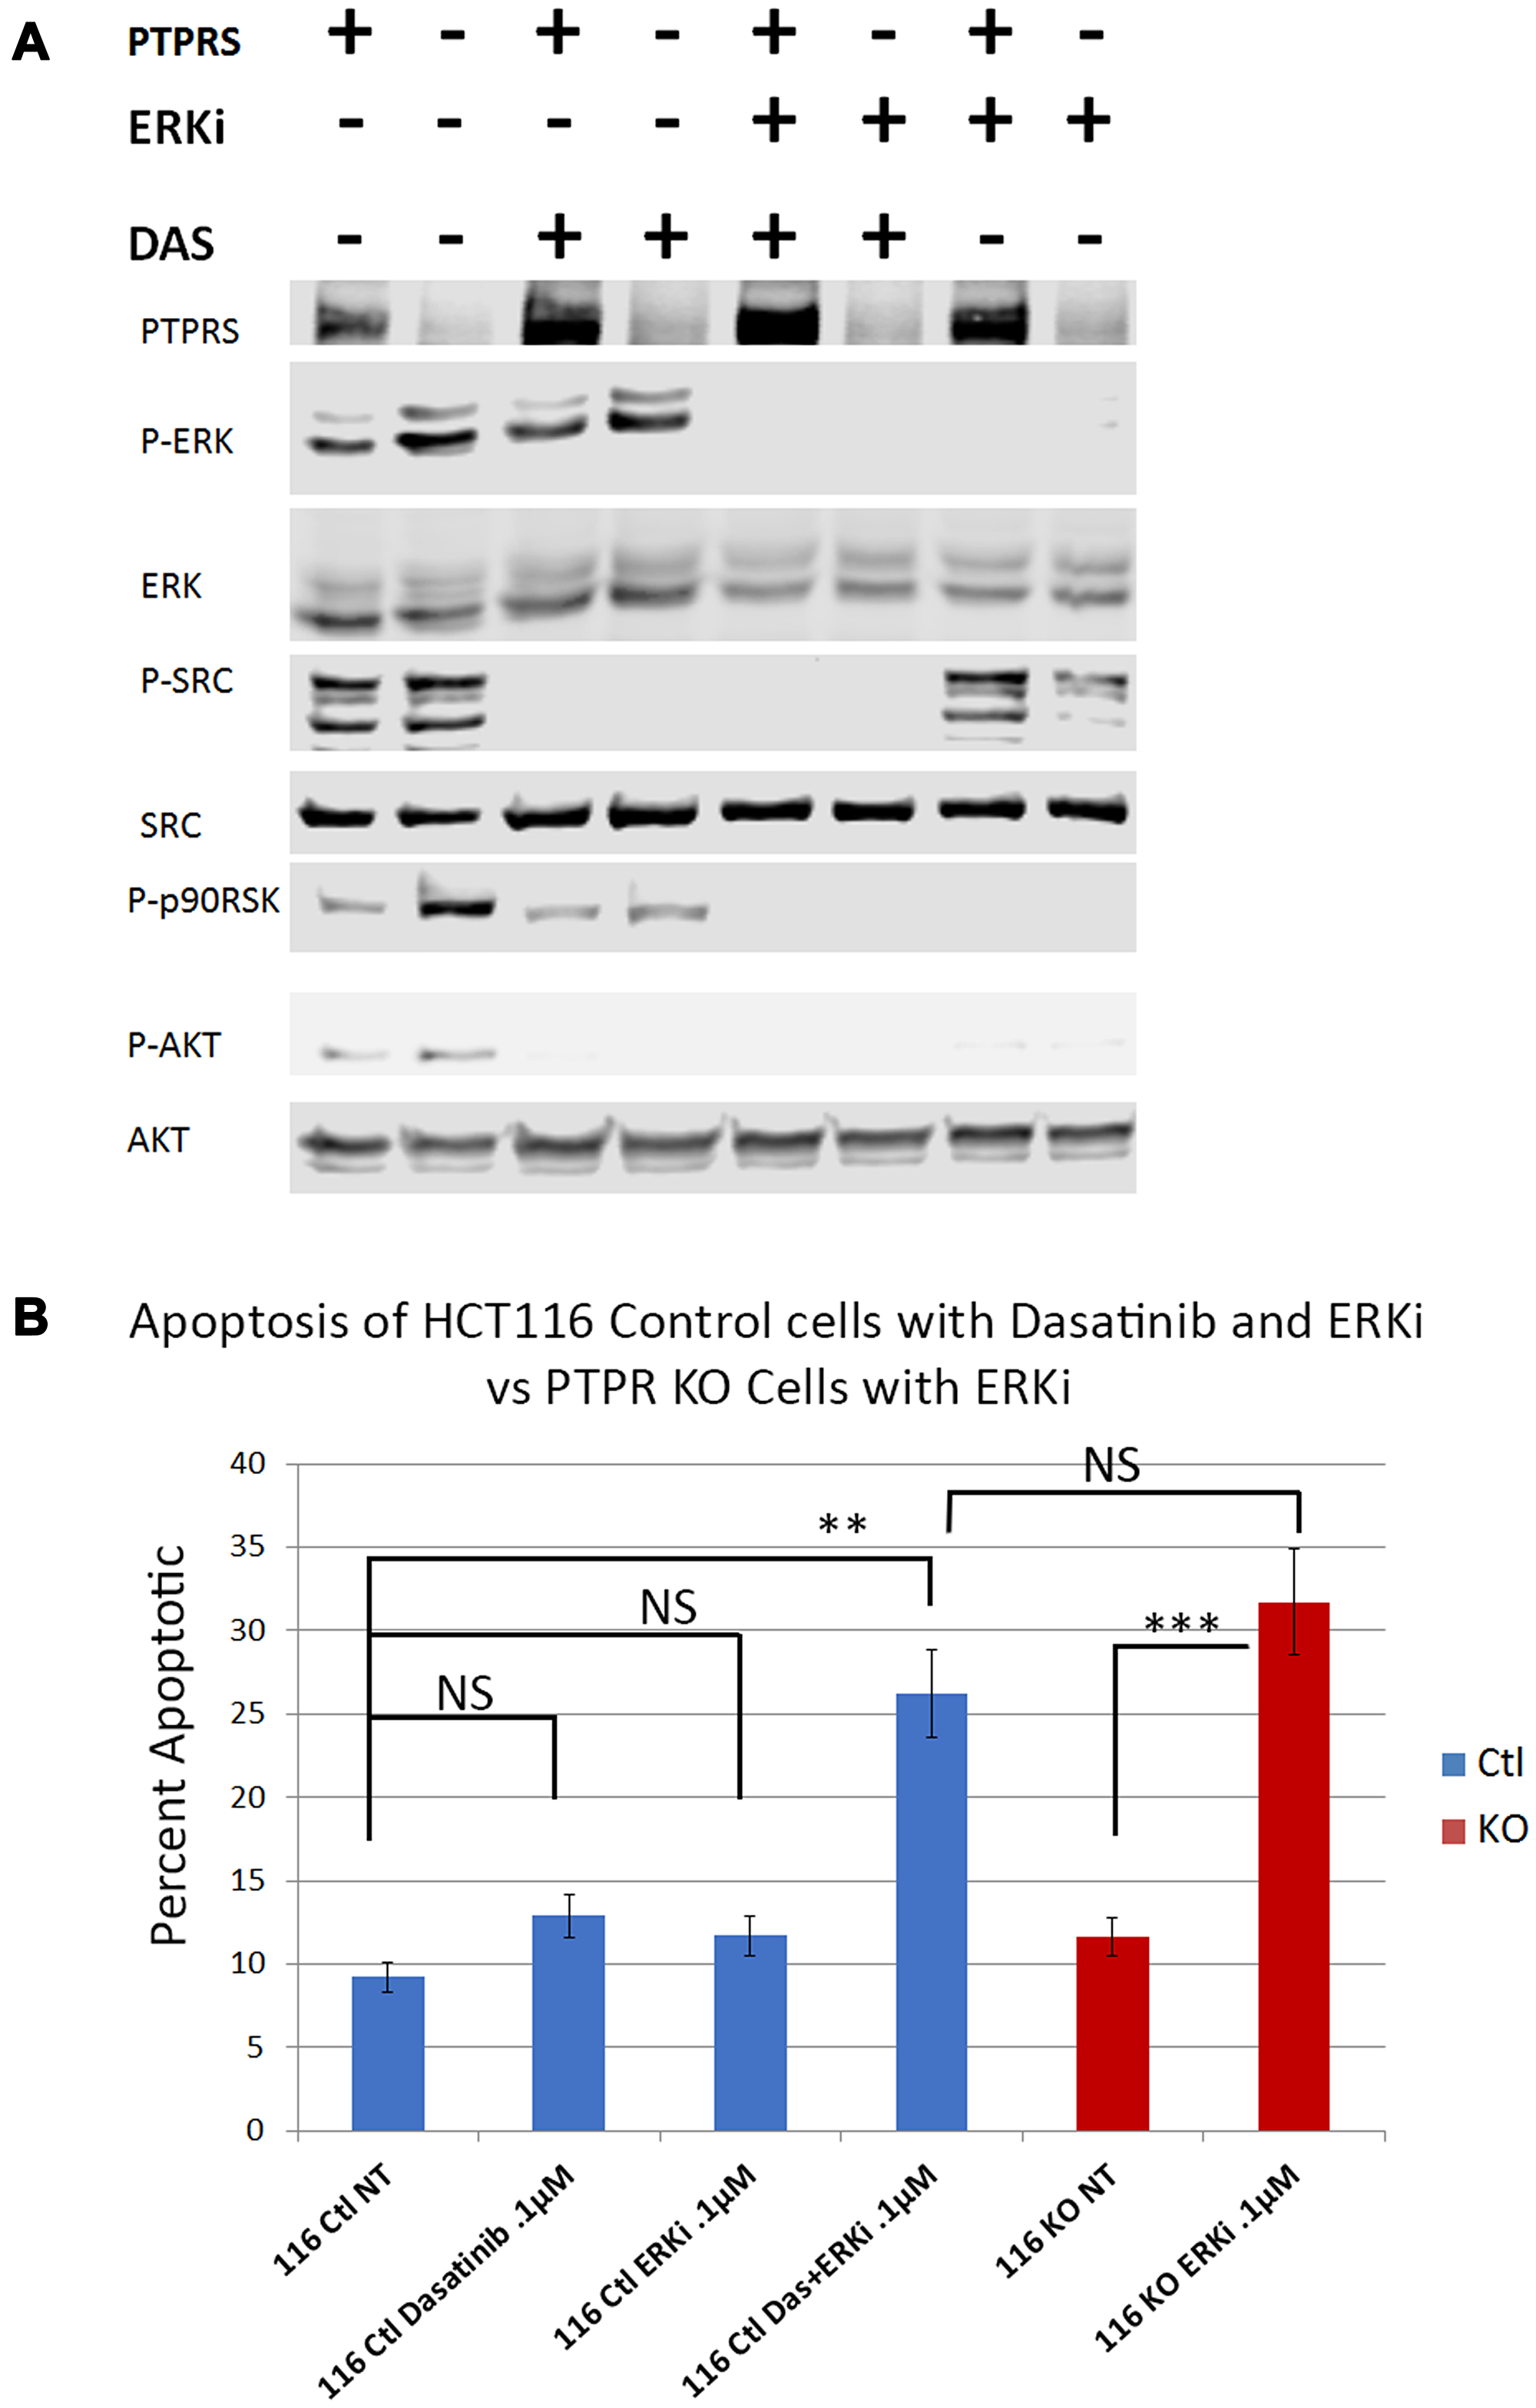 Dasatinib treatments increased apoptotic response to ERK inhibition in HCT116 cells.